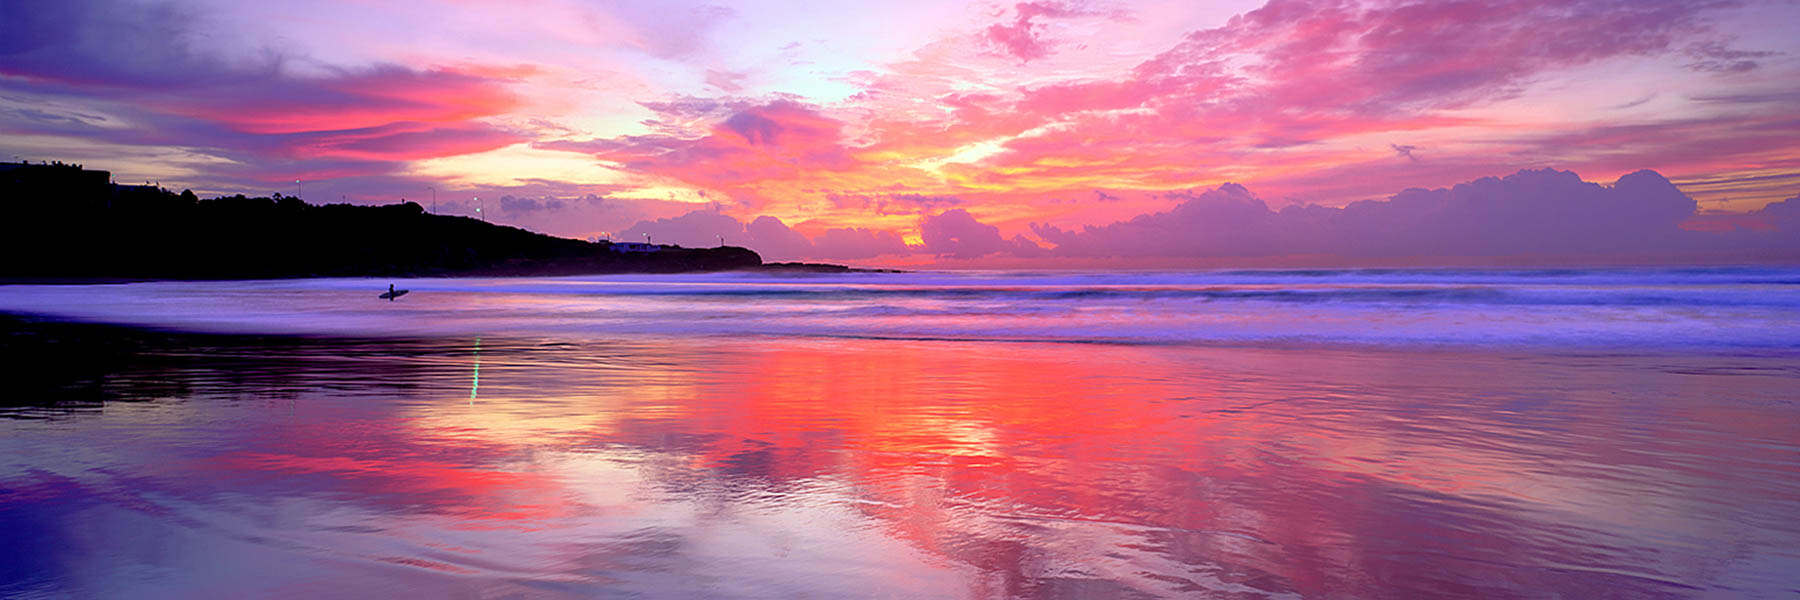 Brilliant sunrise display over Freshwater Beach, Sydney, NSW, Australia.